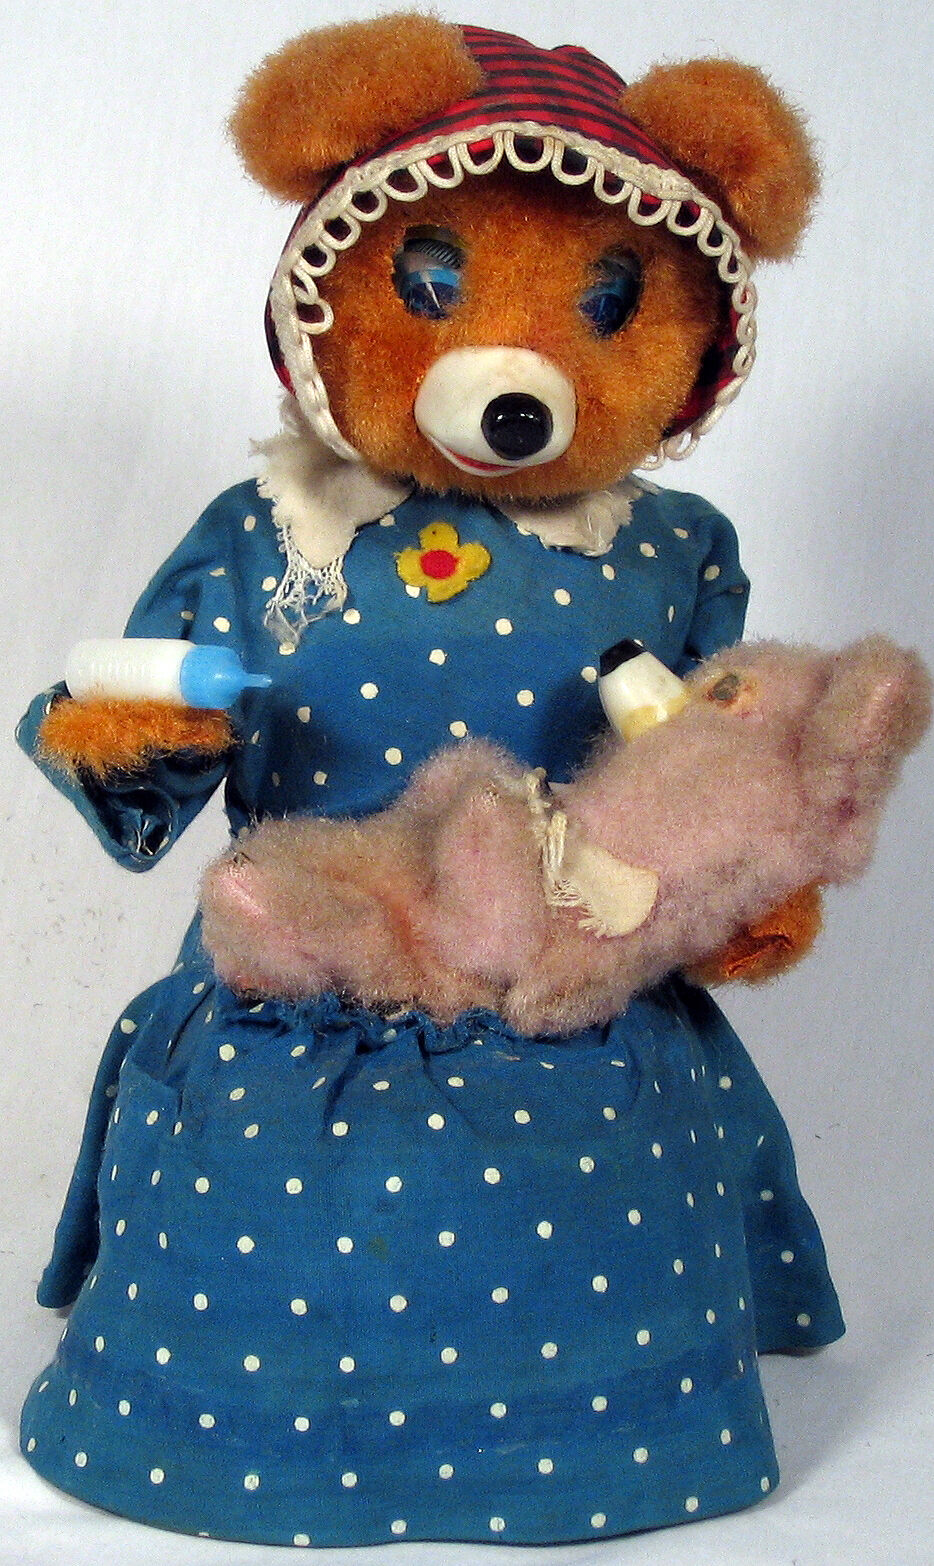 Hungry Baby Bear, 1950s Y Co. Co. Co. FULLY OPERATIONAL. 072cbc